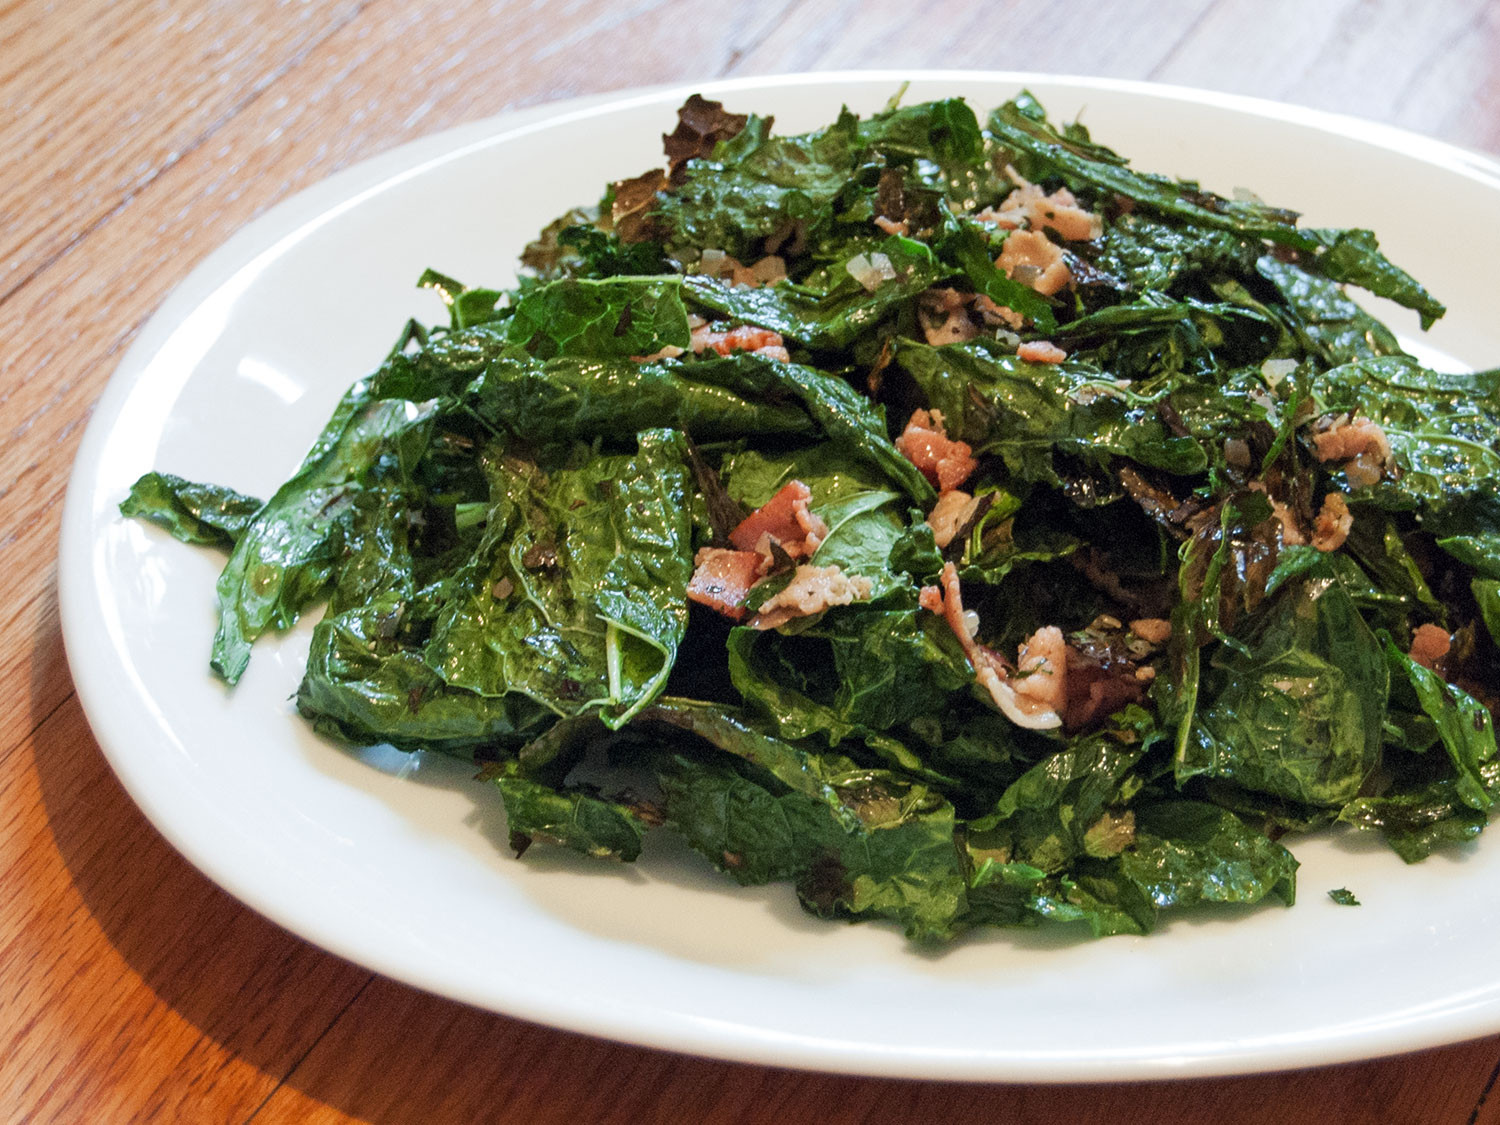 Kale Thanksgiving Recipes  Grilled Kale Salad With Warm Bacon Vinaigrette Recipe